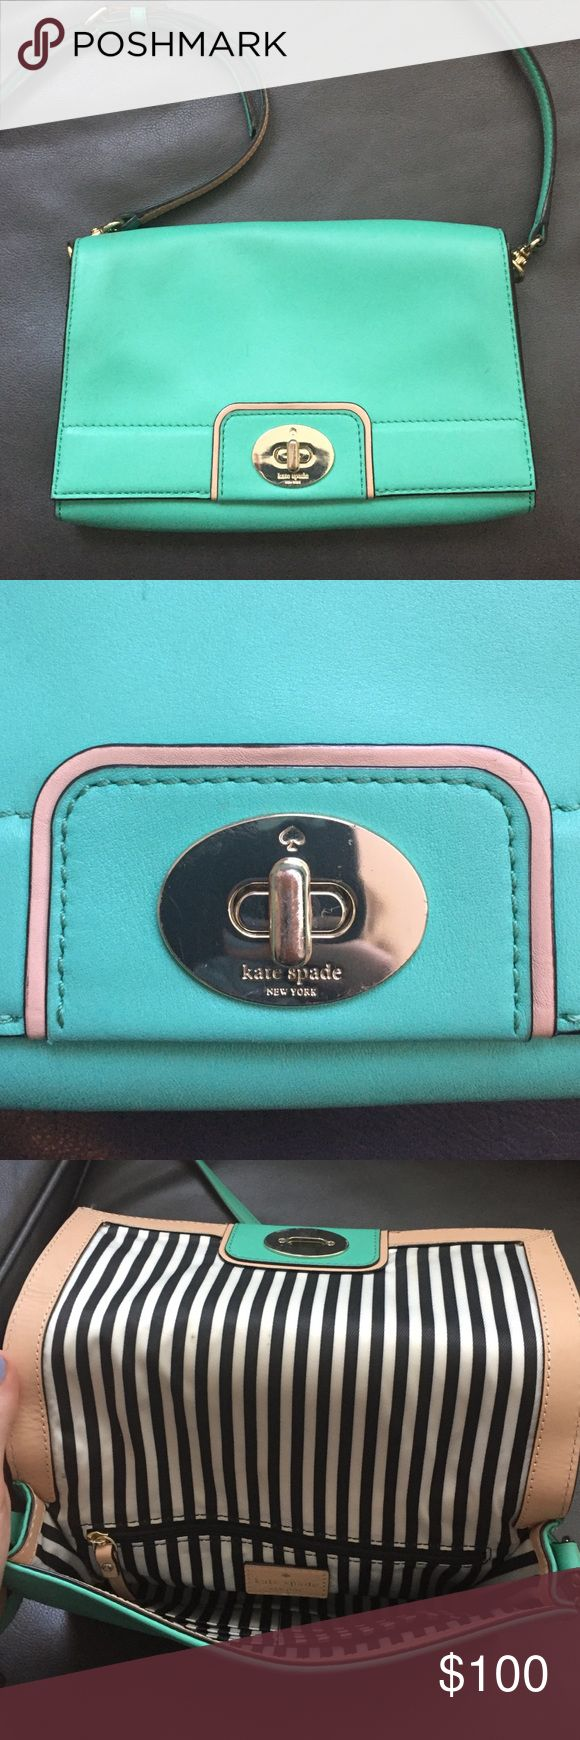 Kate Spade mint green purse Very unique color, eye-catching, and can make a statement to your outfit. kate spade Bags Crossbody Bags